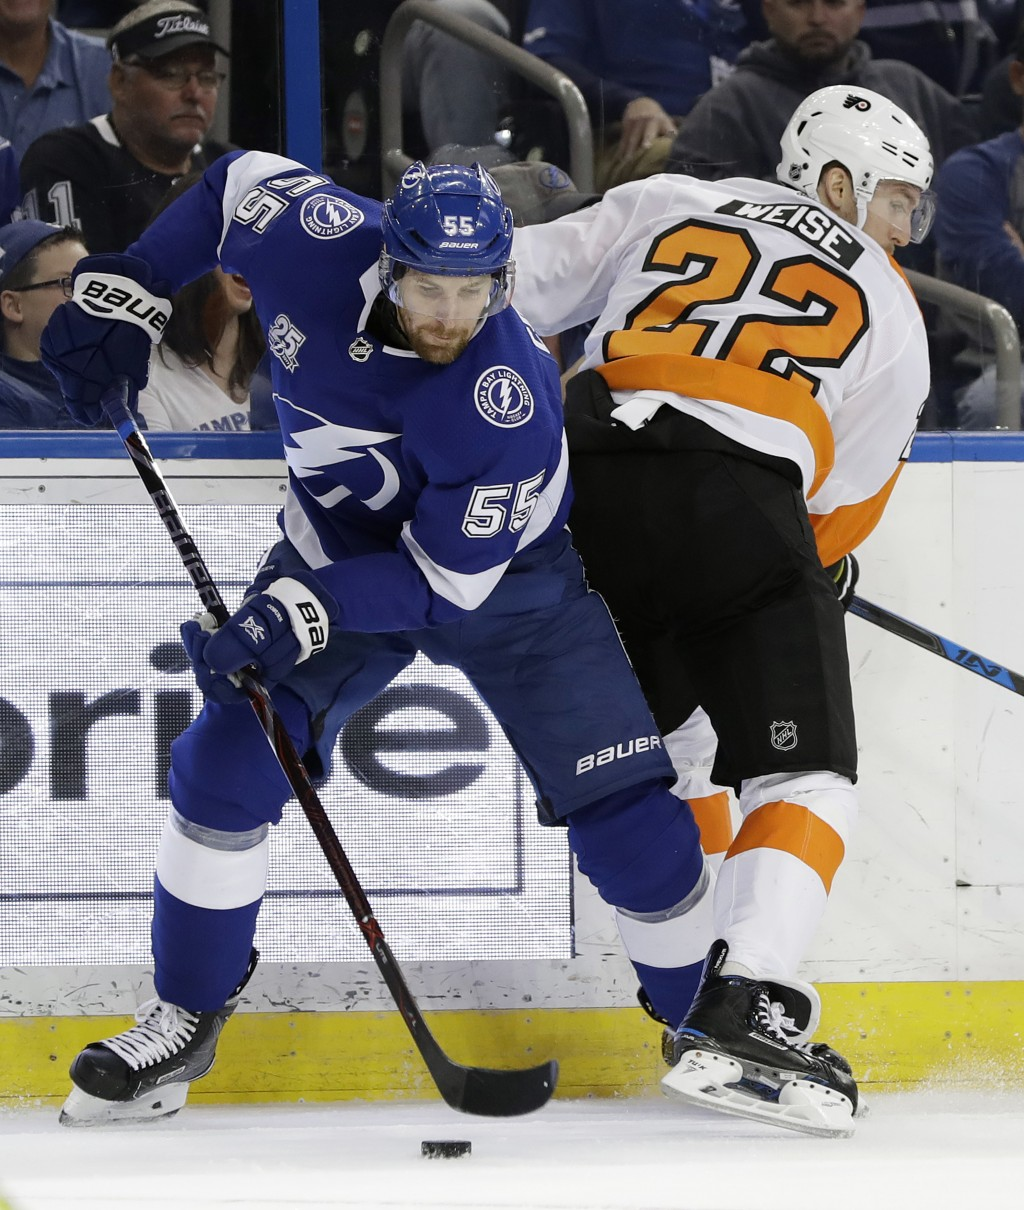 Tampa Bay Lightning defenseman Braydon Coburn (55) strips the puck from Philadelphia Flyers right wing Dale Weise (22) during the first period of an N...